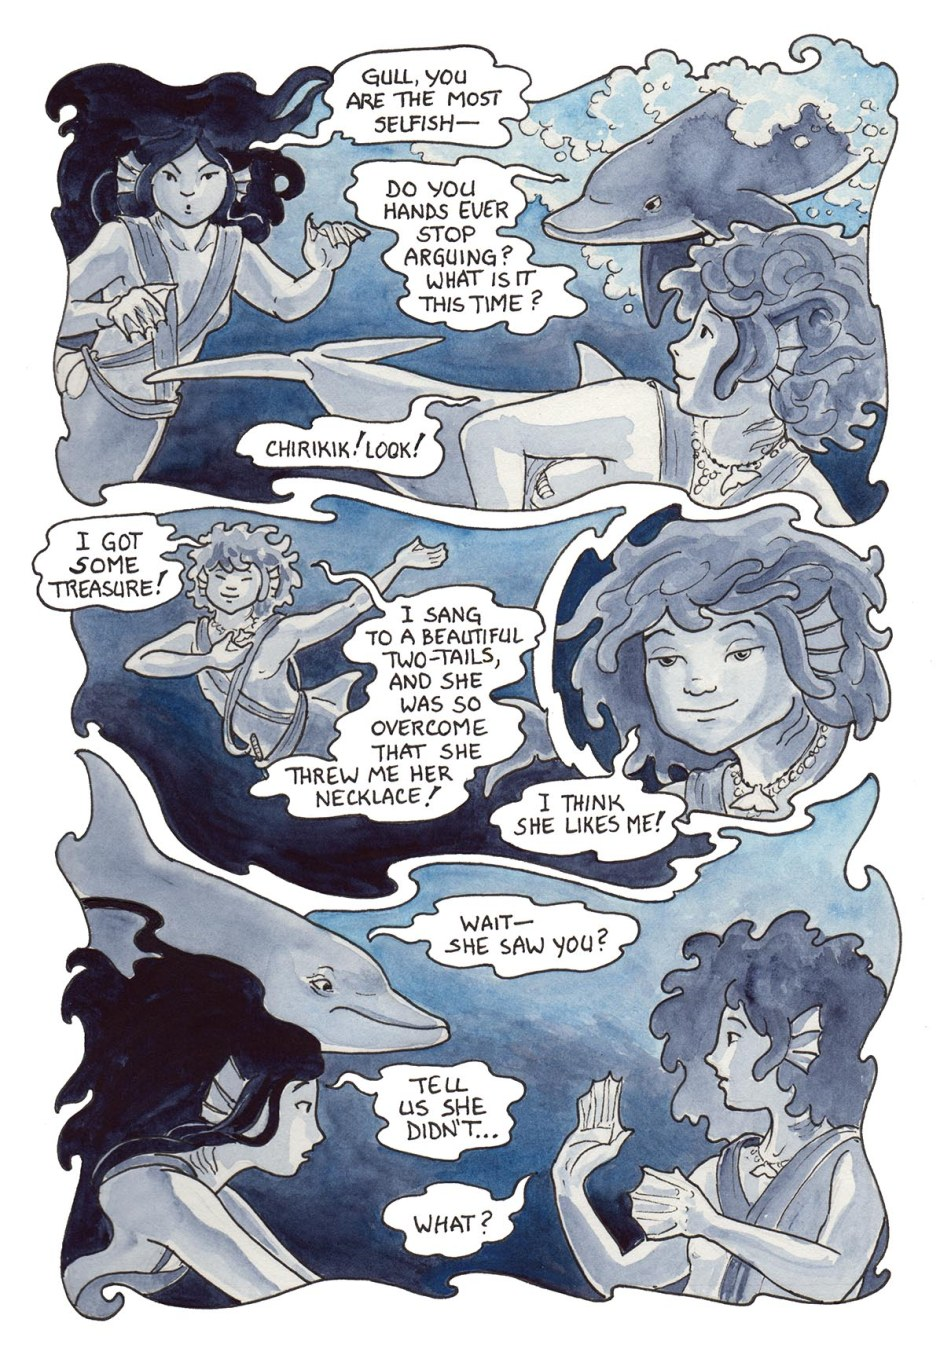 Page 76 — Sami has an admirer! He may be a bit lacking in judgement, though…